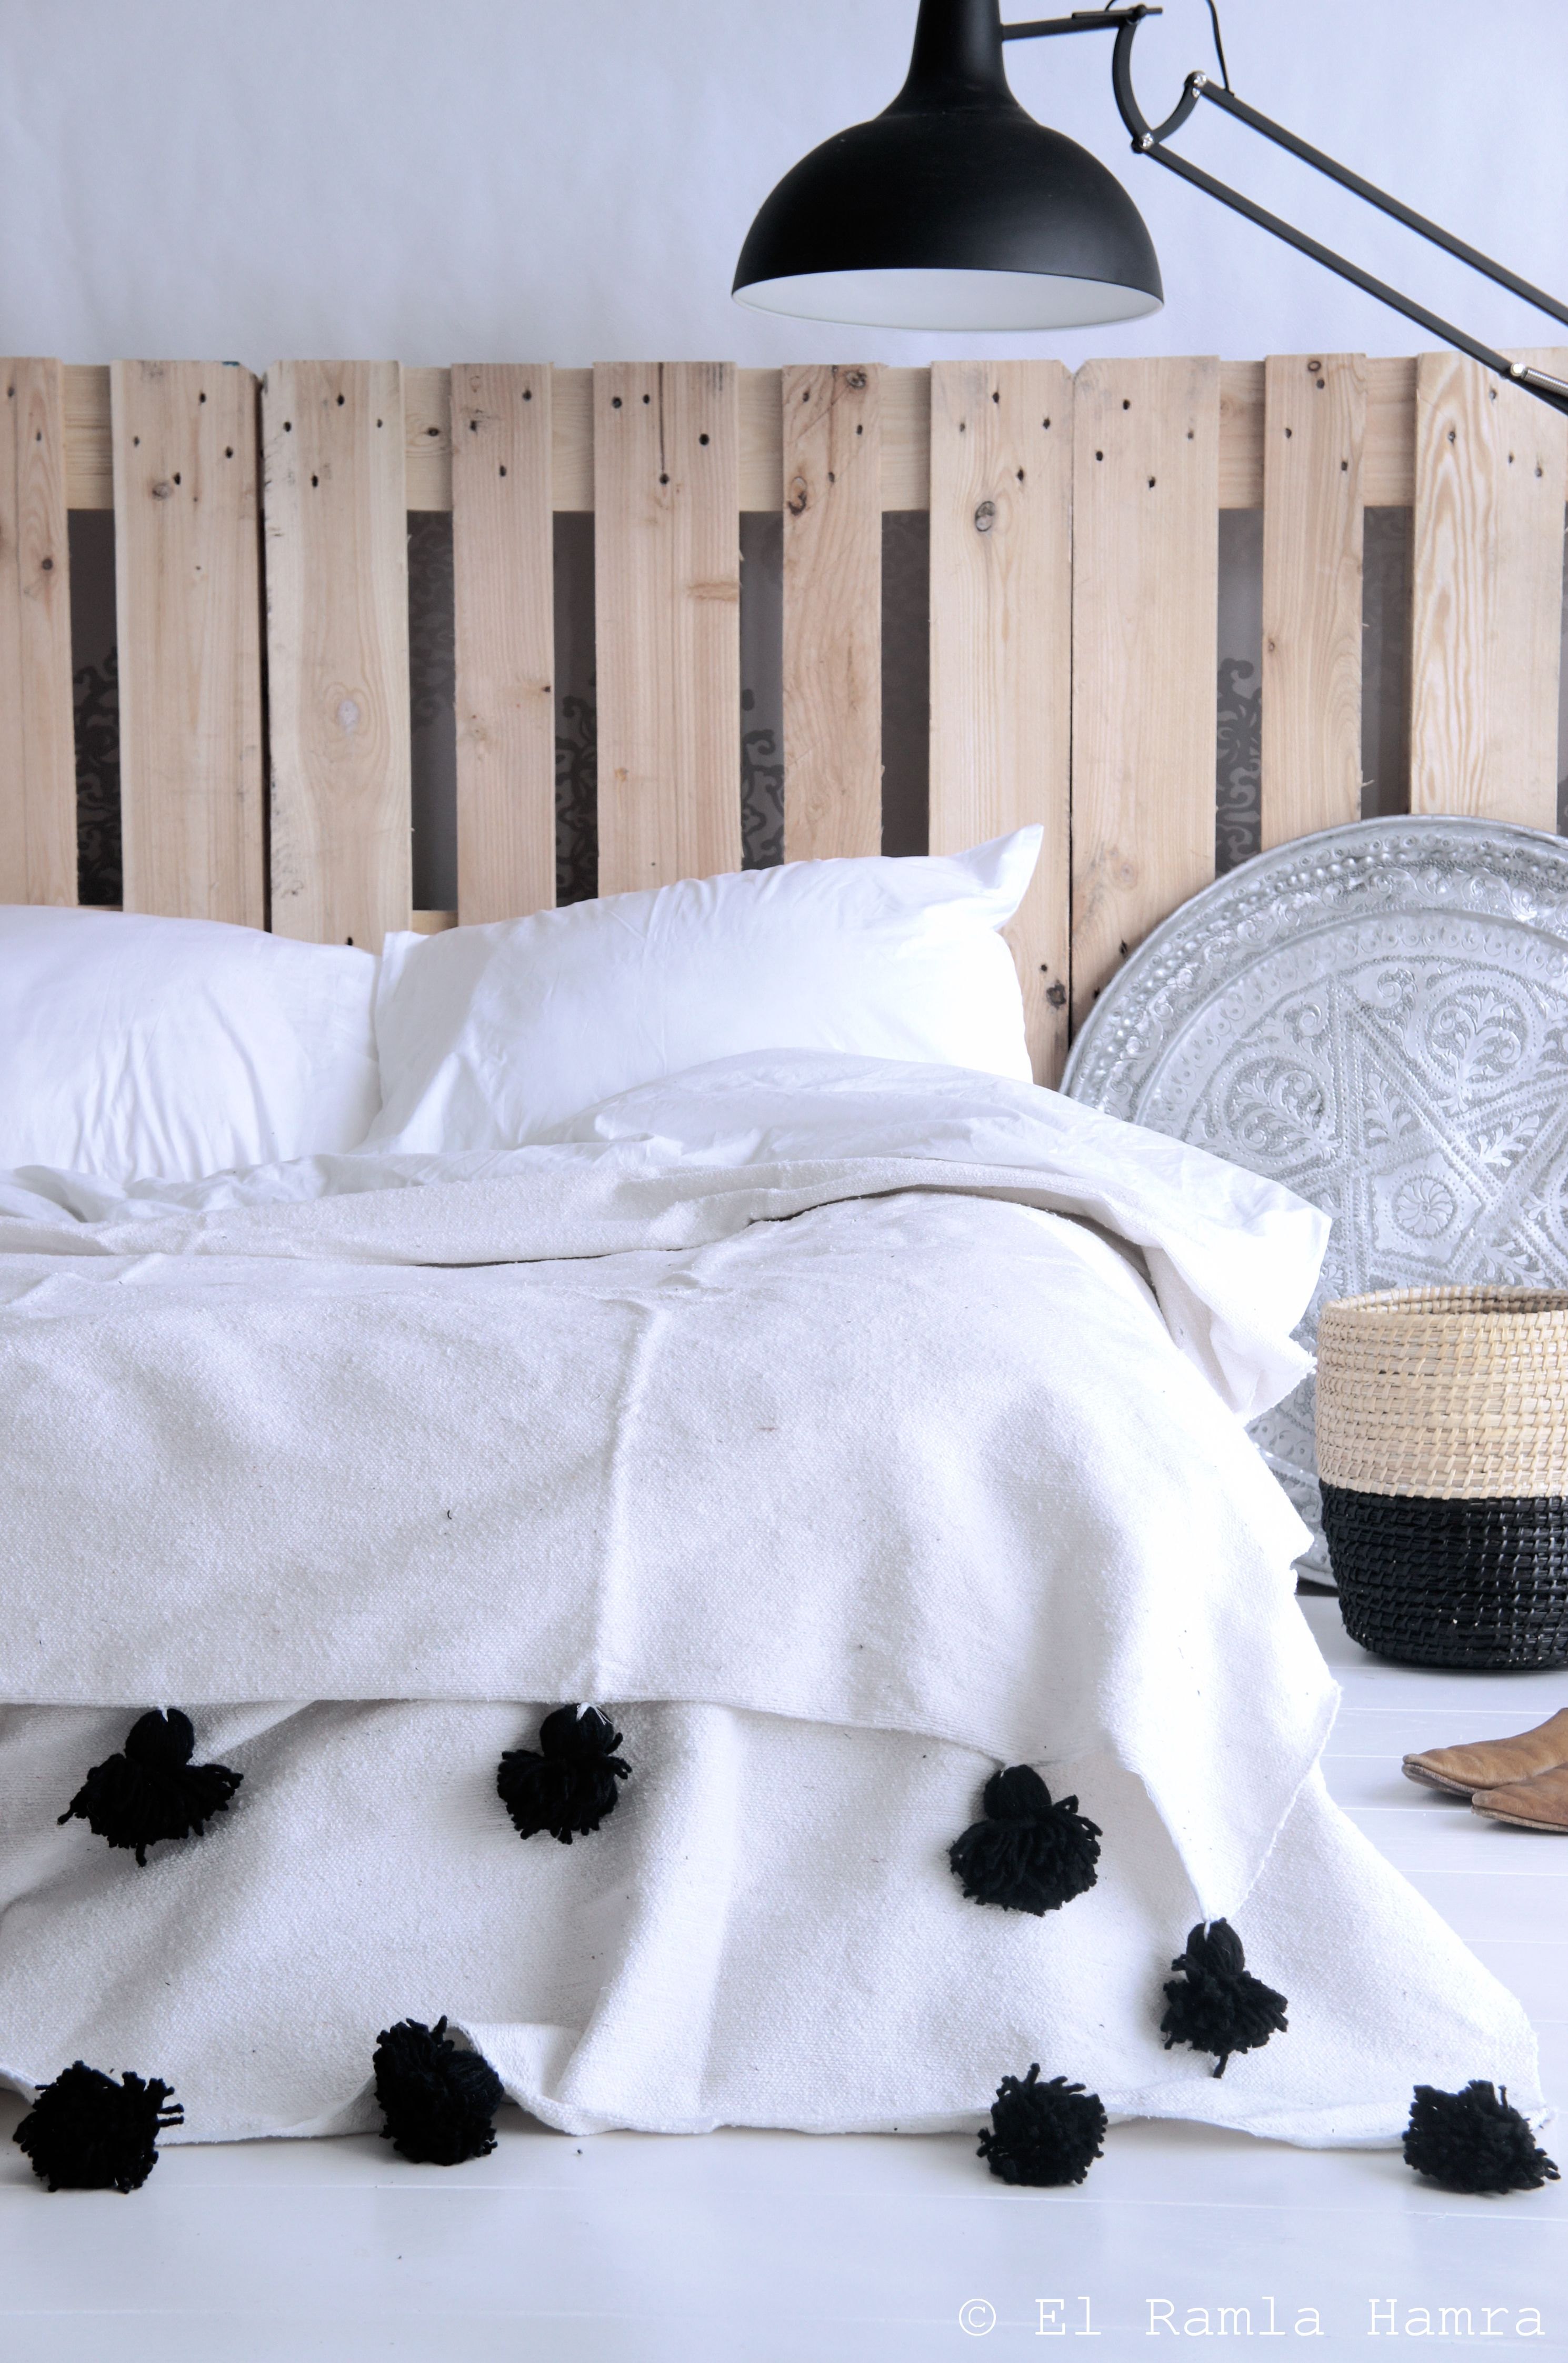 Blanke pallets achter bed and moroccan pom